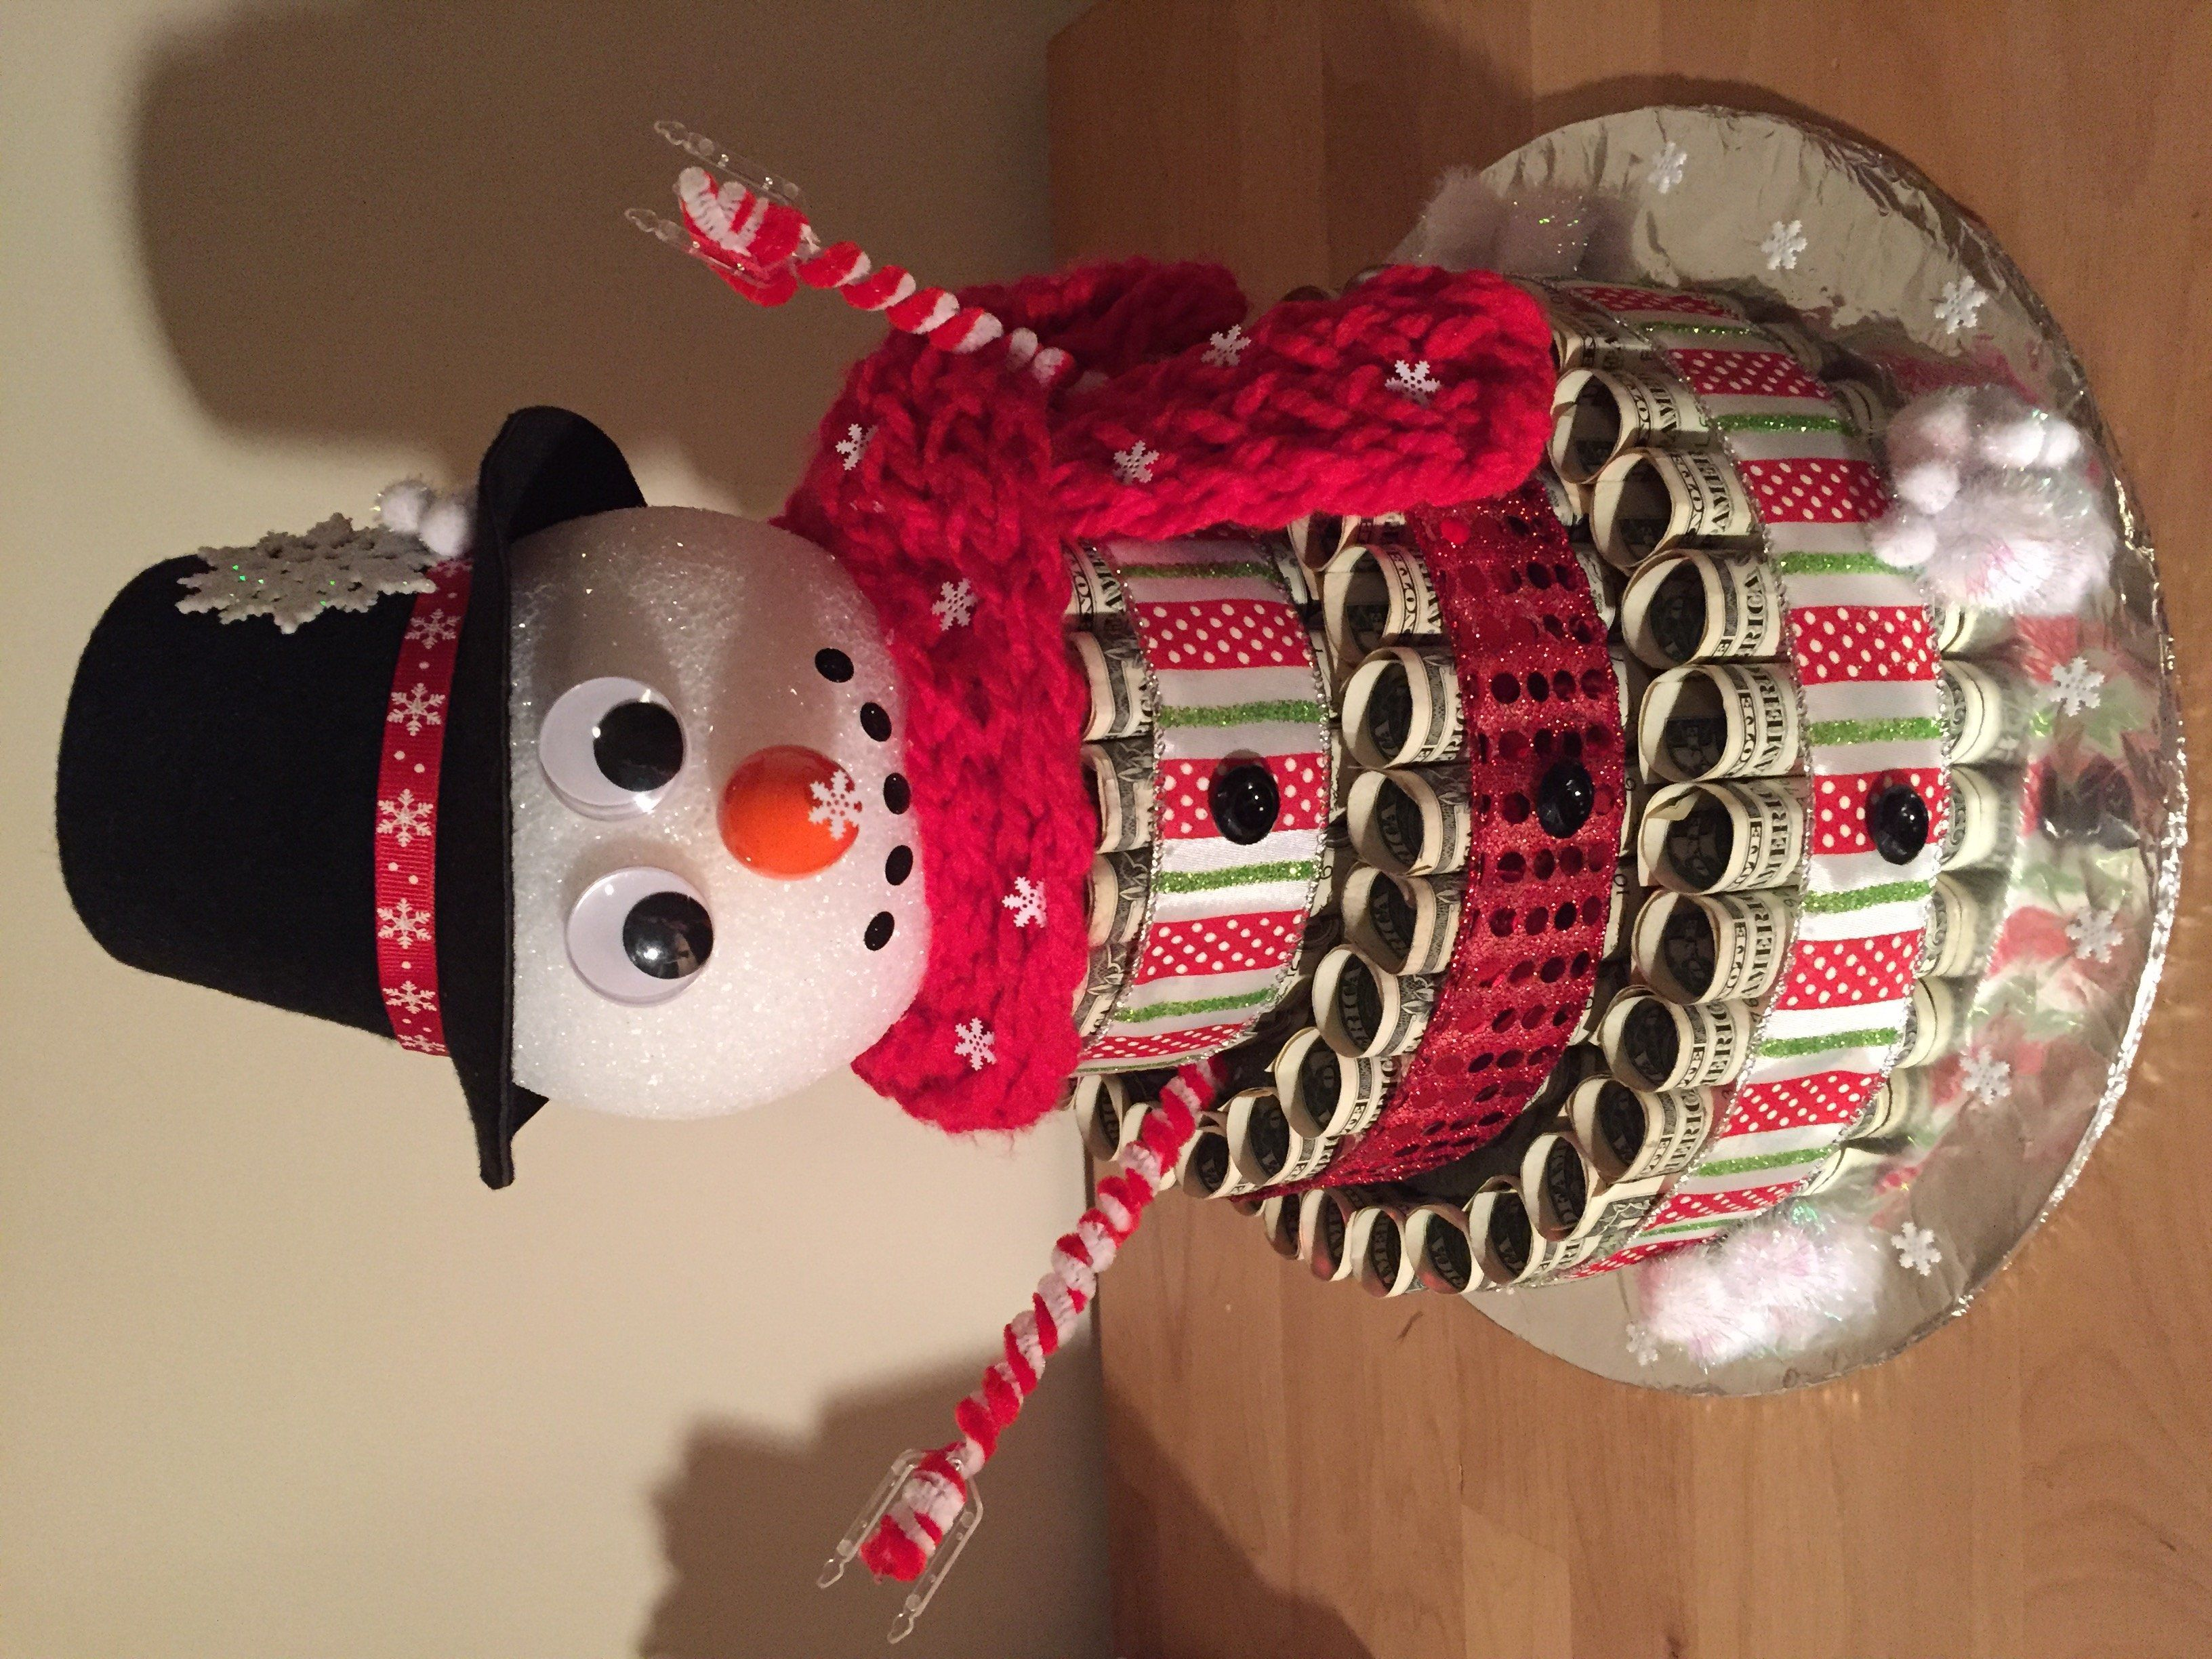 Snowman money cake - Scrapbook.com #crochetformoney Snowman money cake - Scrapbook.com #crochetformoney